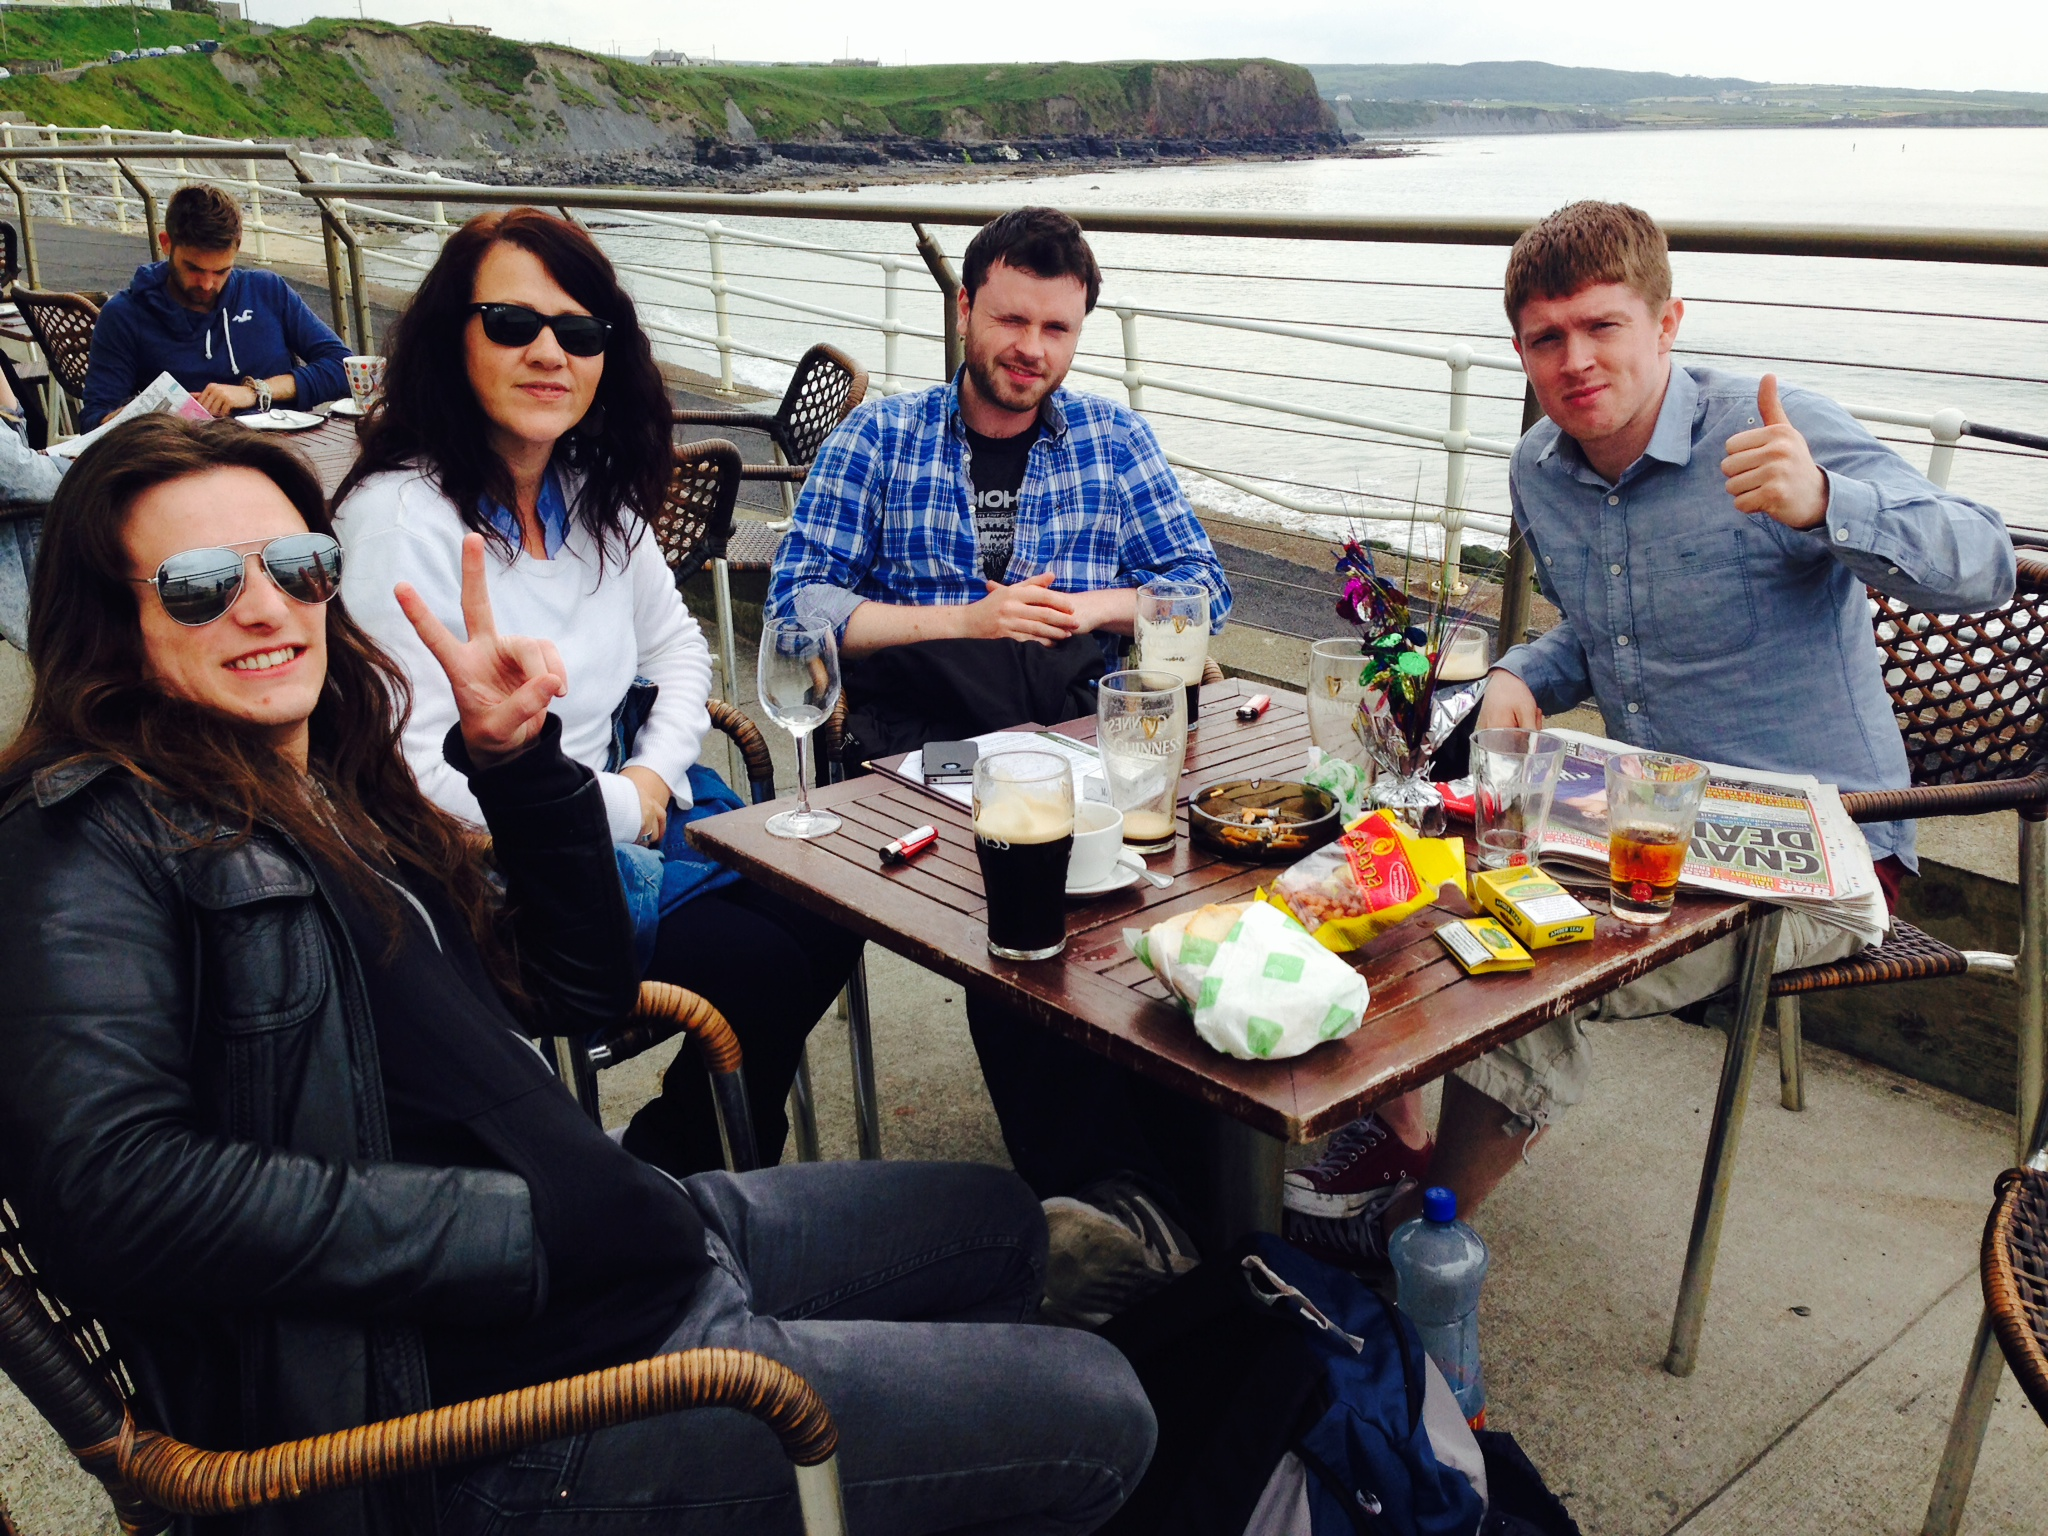 Isaacs goes to The Cliffs of Moher - A Drunkard's tale ! - Isaacs